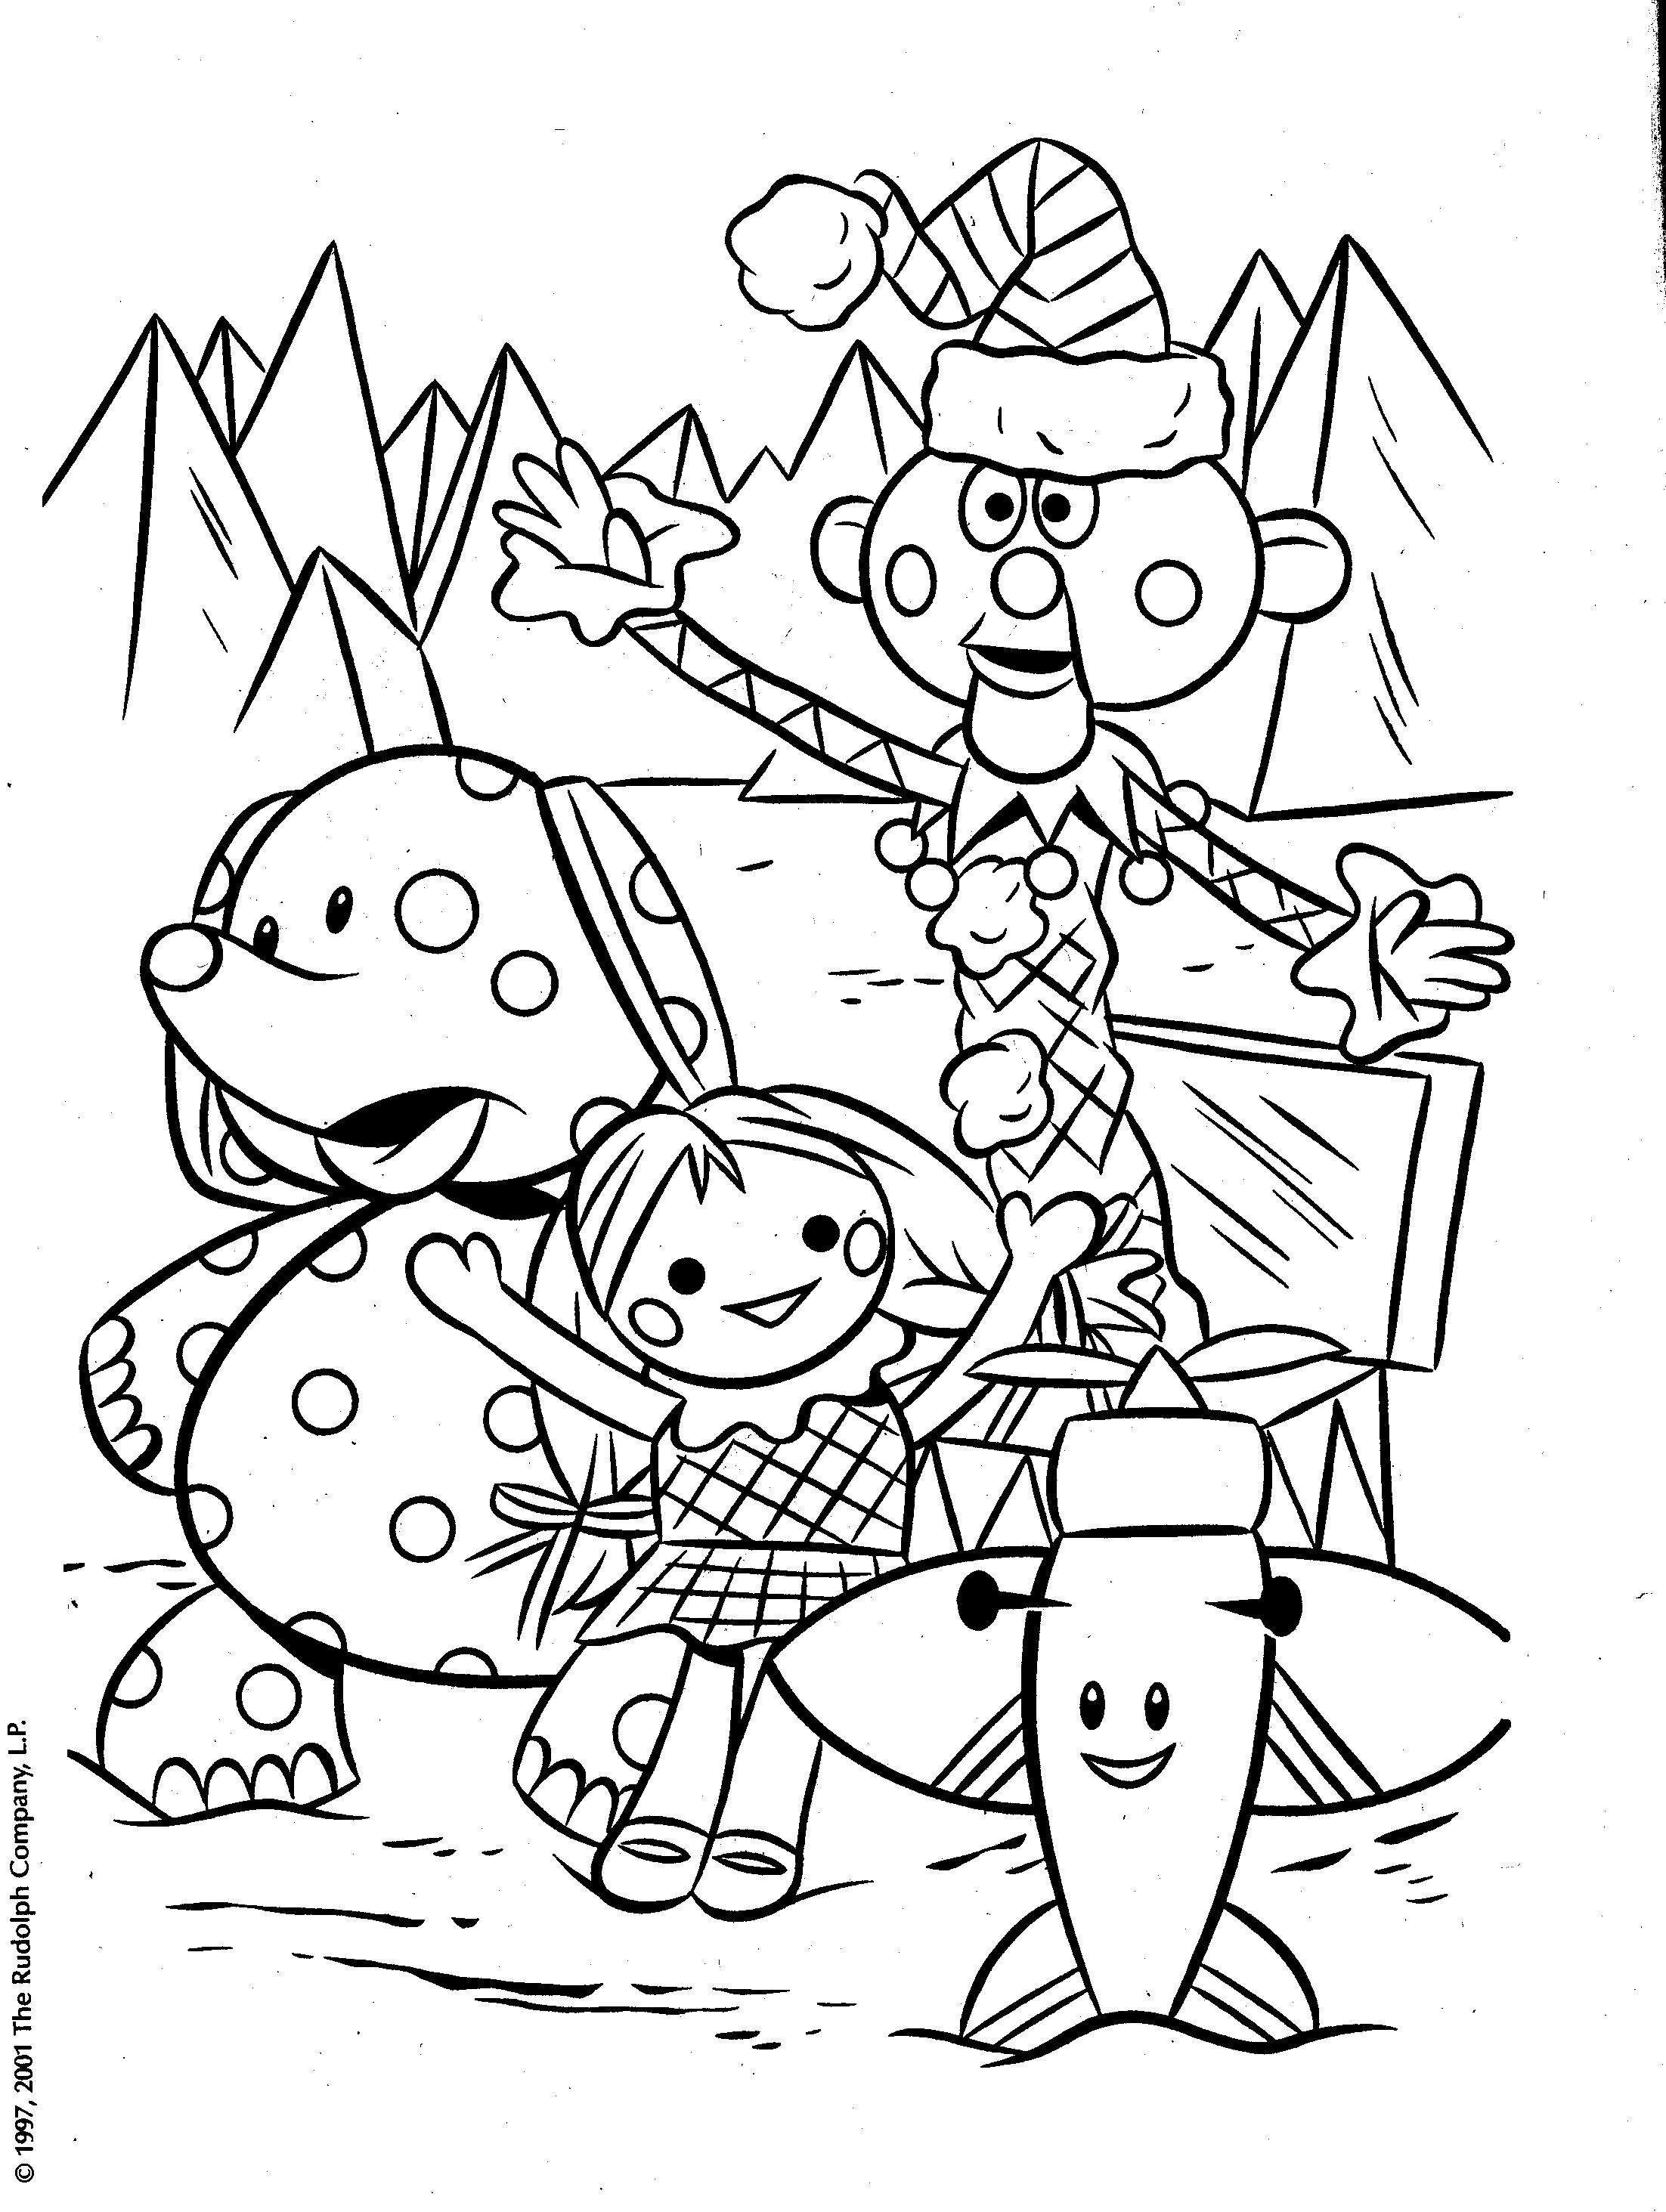 Rudolph Misfit Toys Coloring Pages Rudolph Coloring Pages